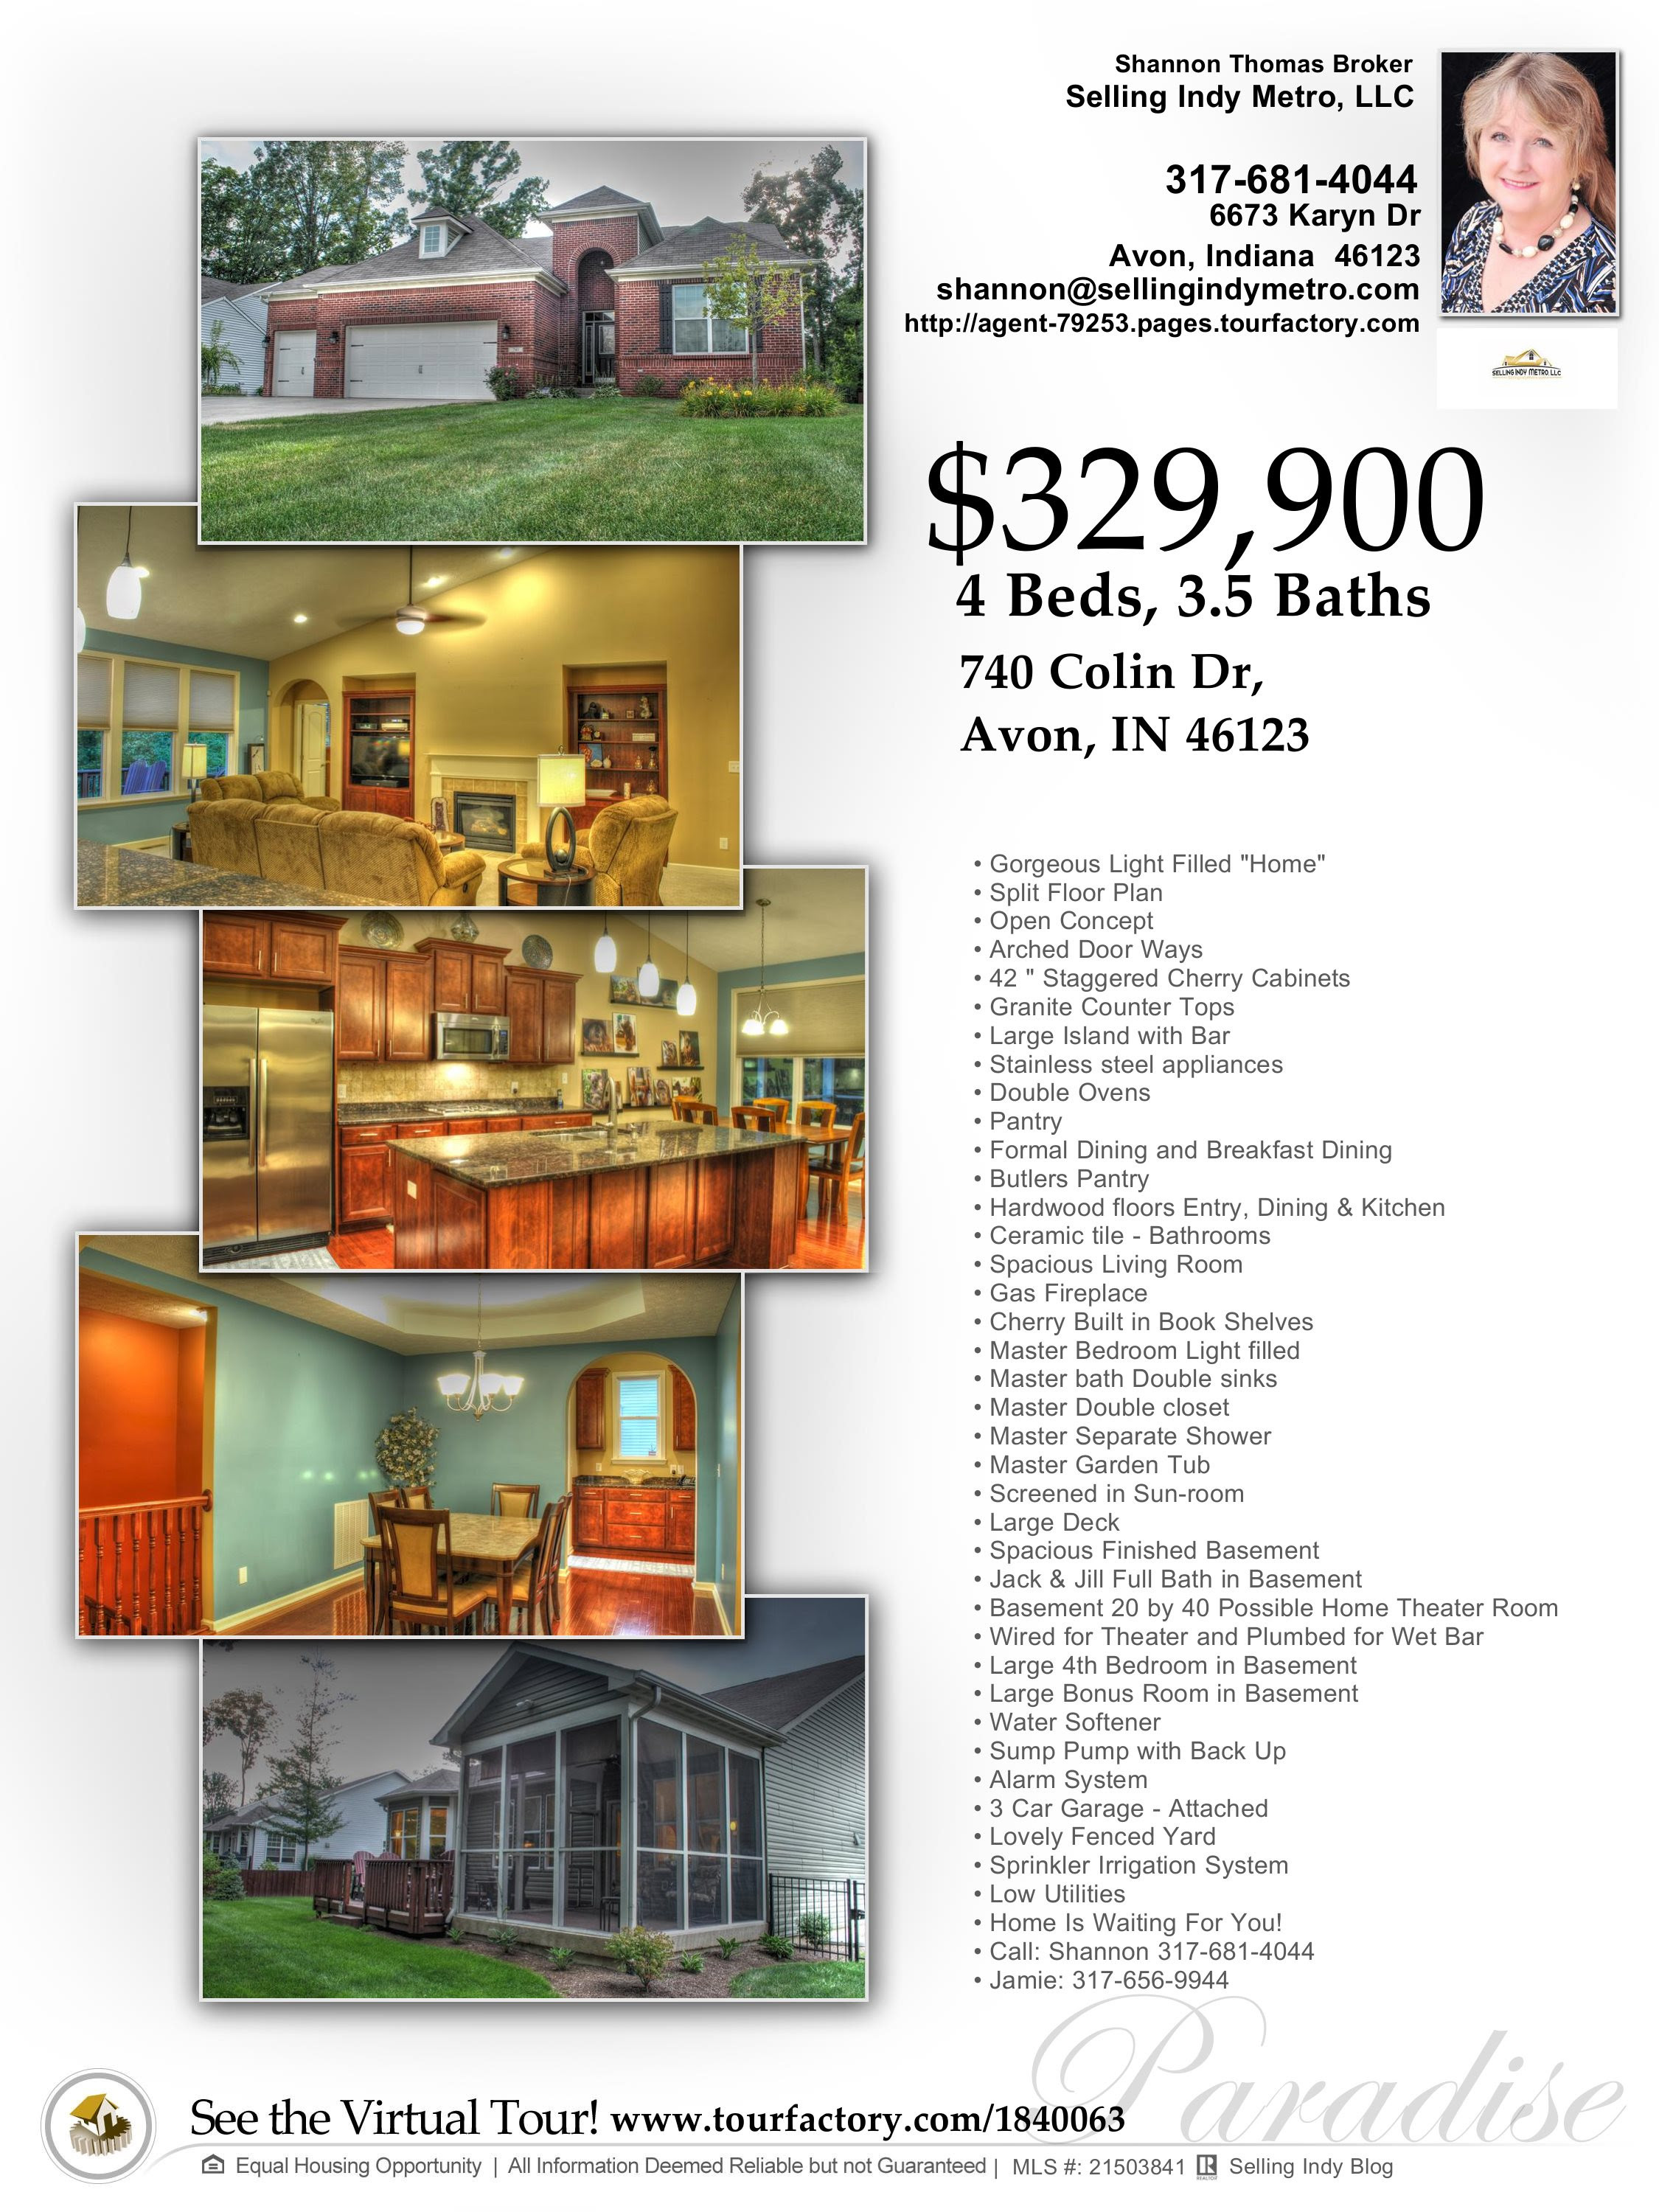 Avon Indiana Home For Sale